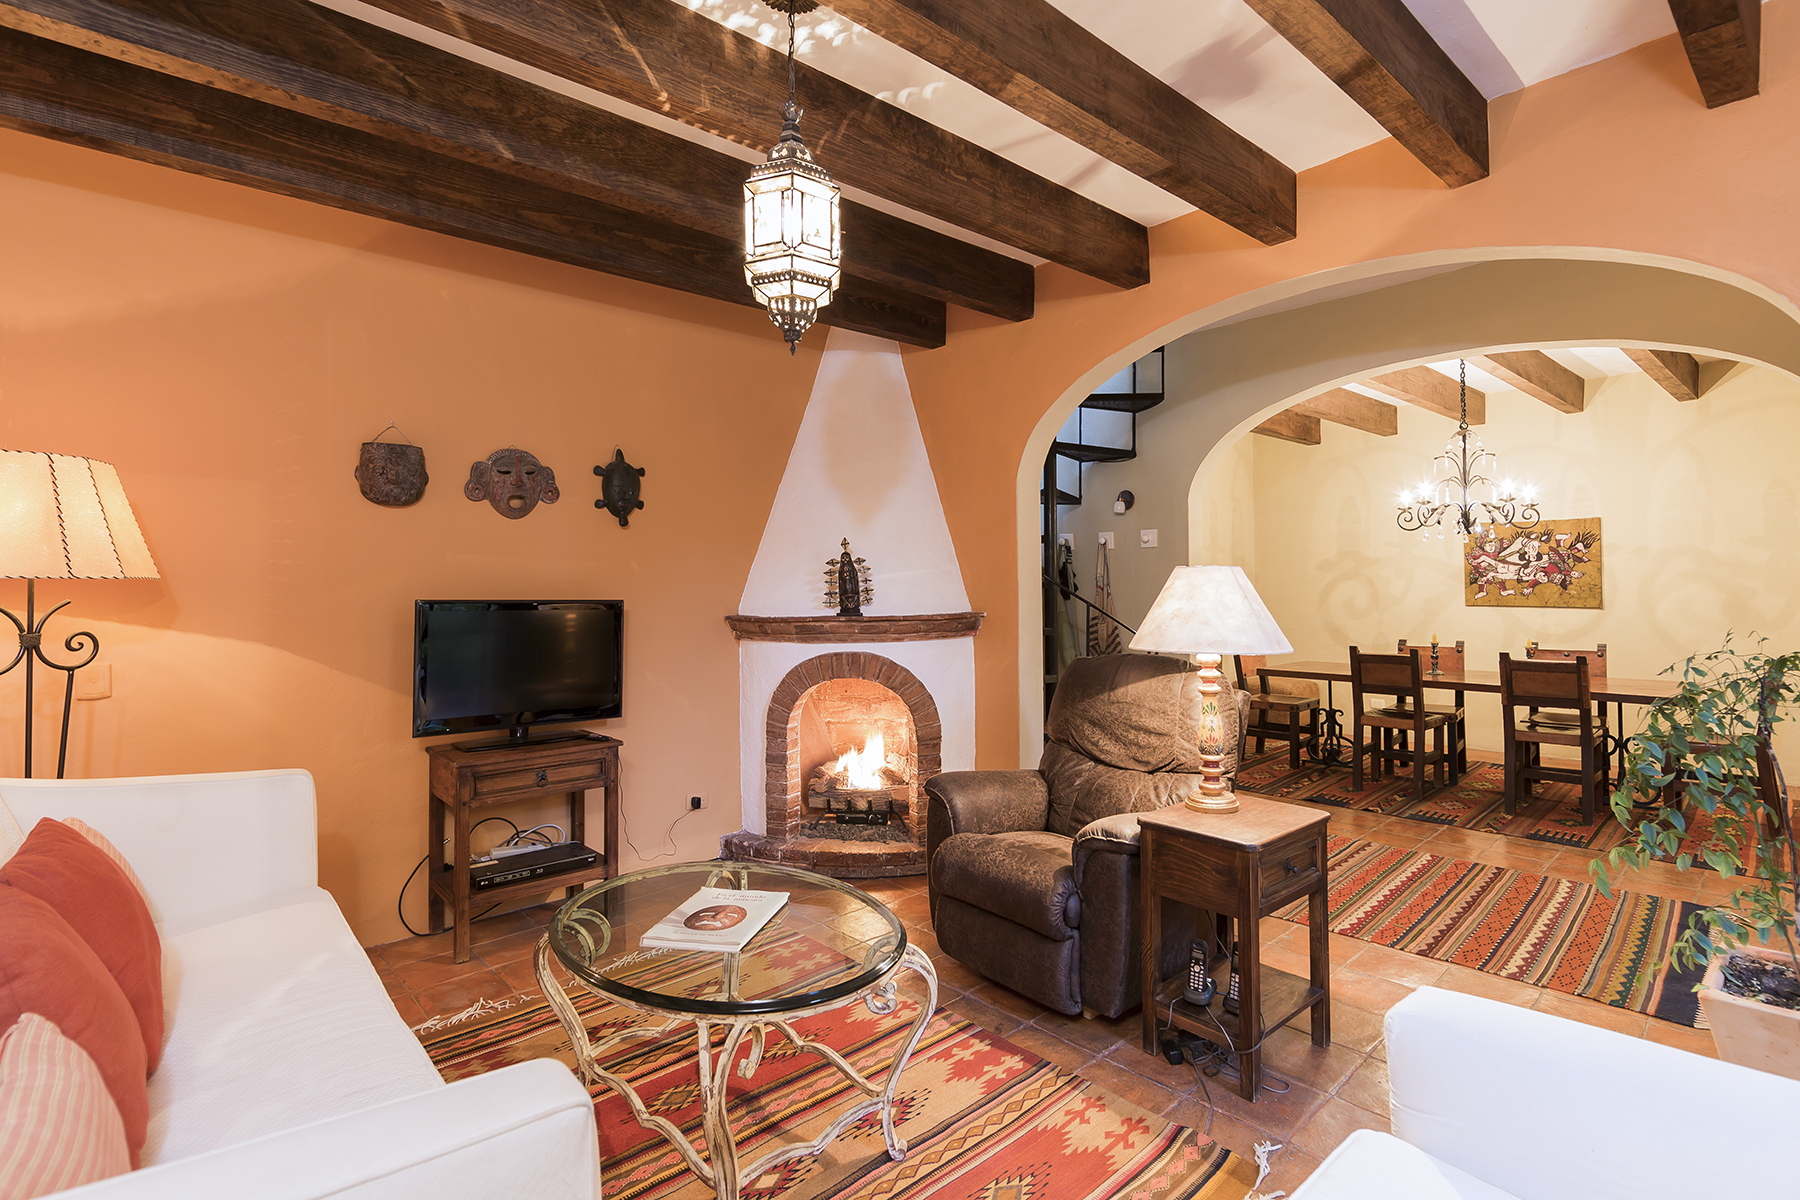 Single Family Home for Sale at CASA LORETO San Miguel De Allende, Guanajuato Mexico